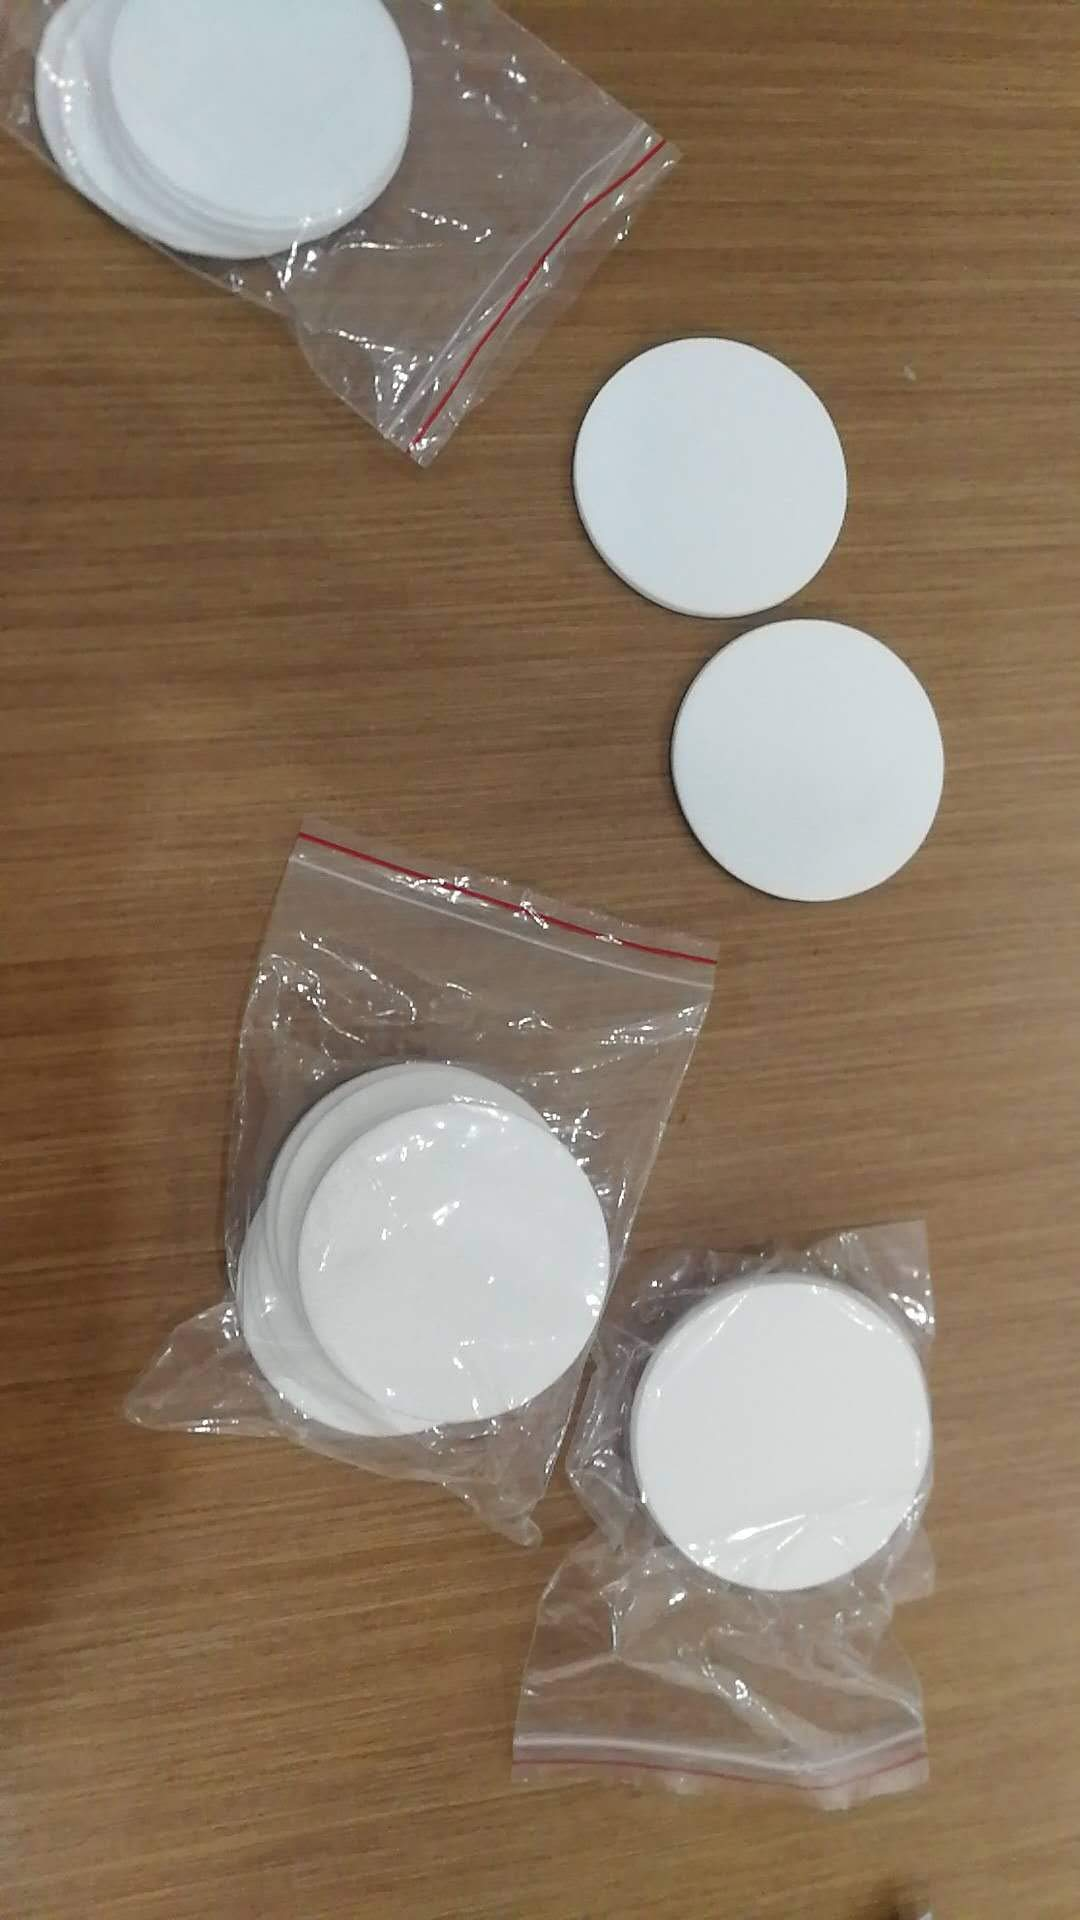 12 Synthetic Filter Discs 90mm for a Buchner Funnel and Cut Them fit''Wide Mouth'' Size Used for Mushroom Cultivation by Amazing-us